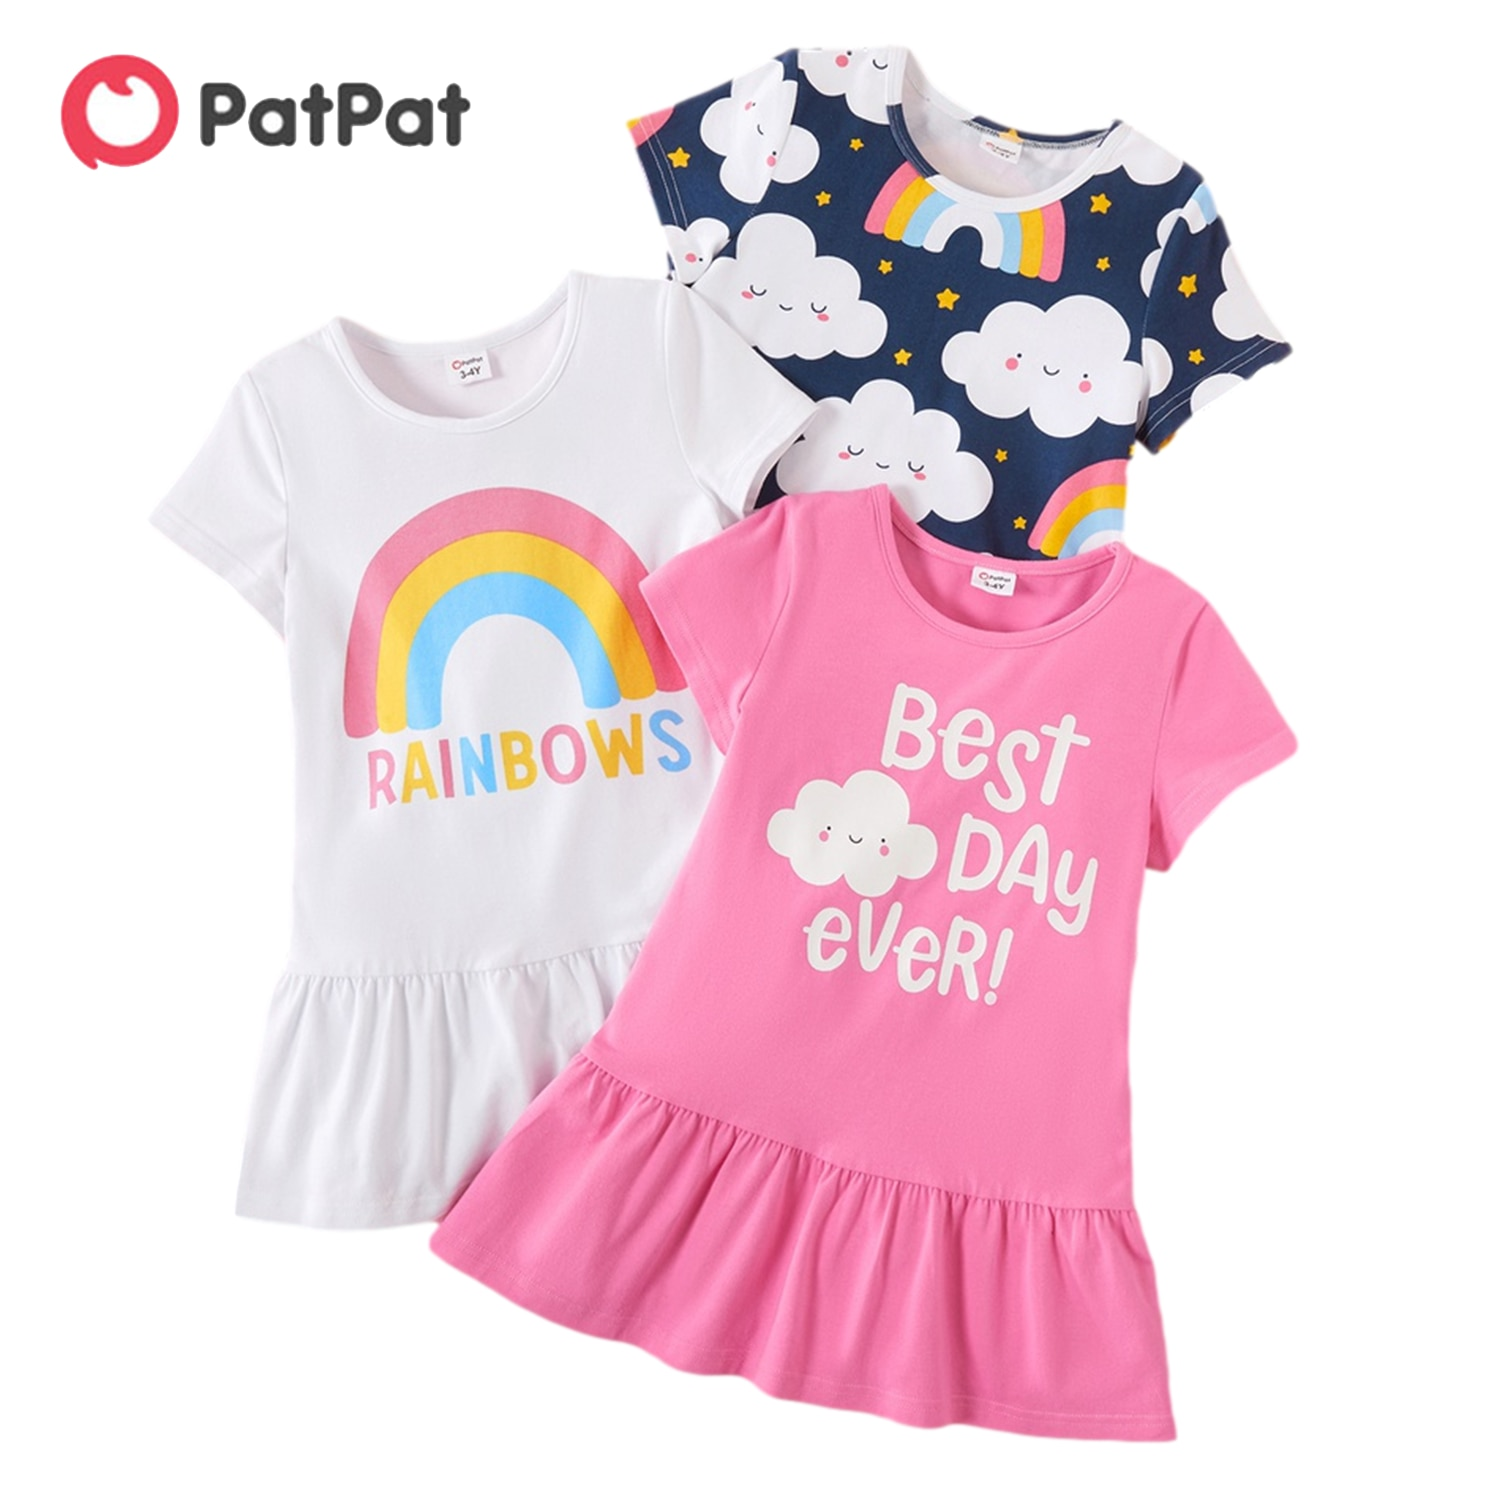 aliexpress - PatPat 2021 Spring and Autumn 3-pack Toddler Girl Dots and Solid Long-sleeve Dress Set Cute Children's Clothing